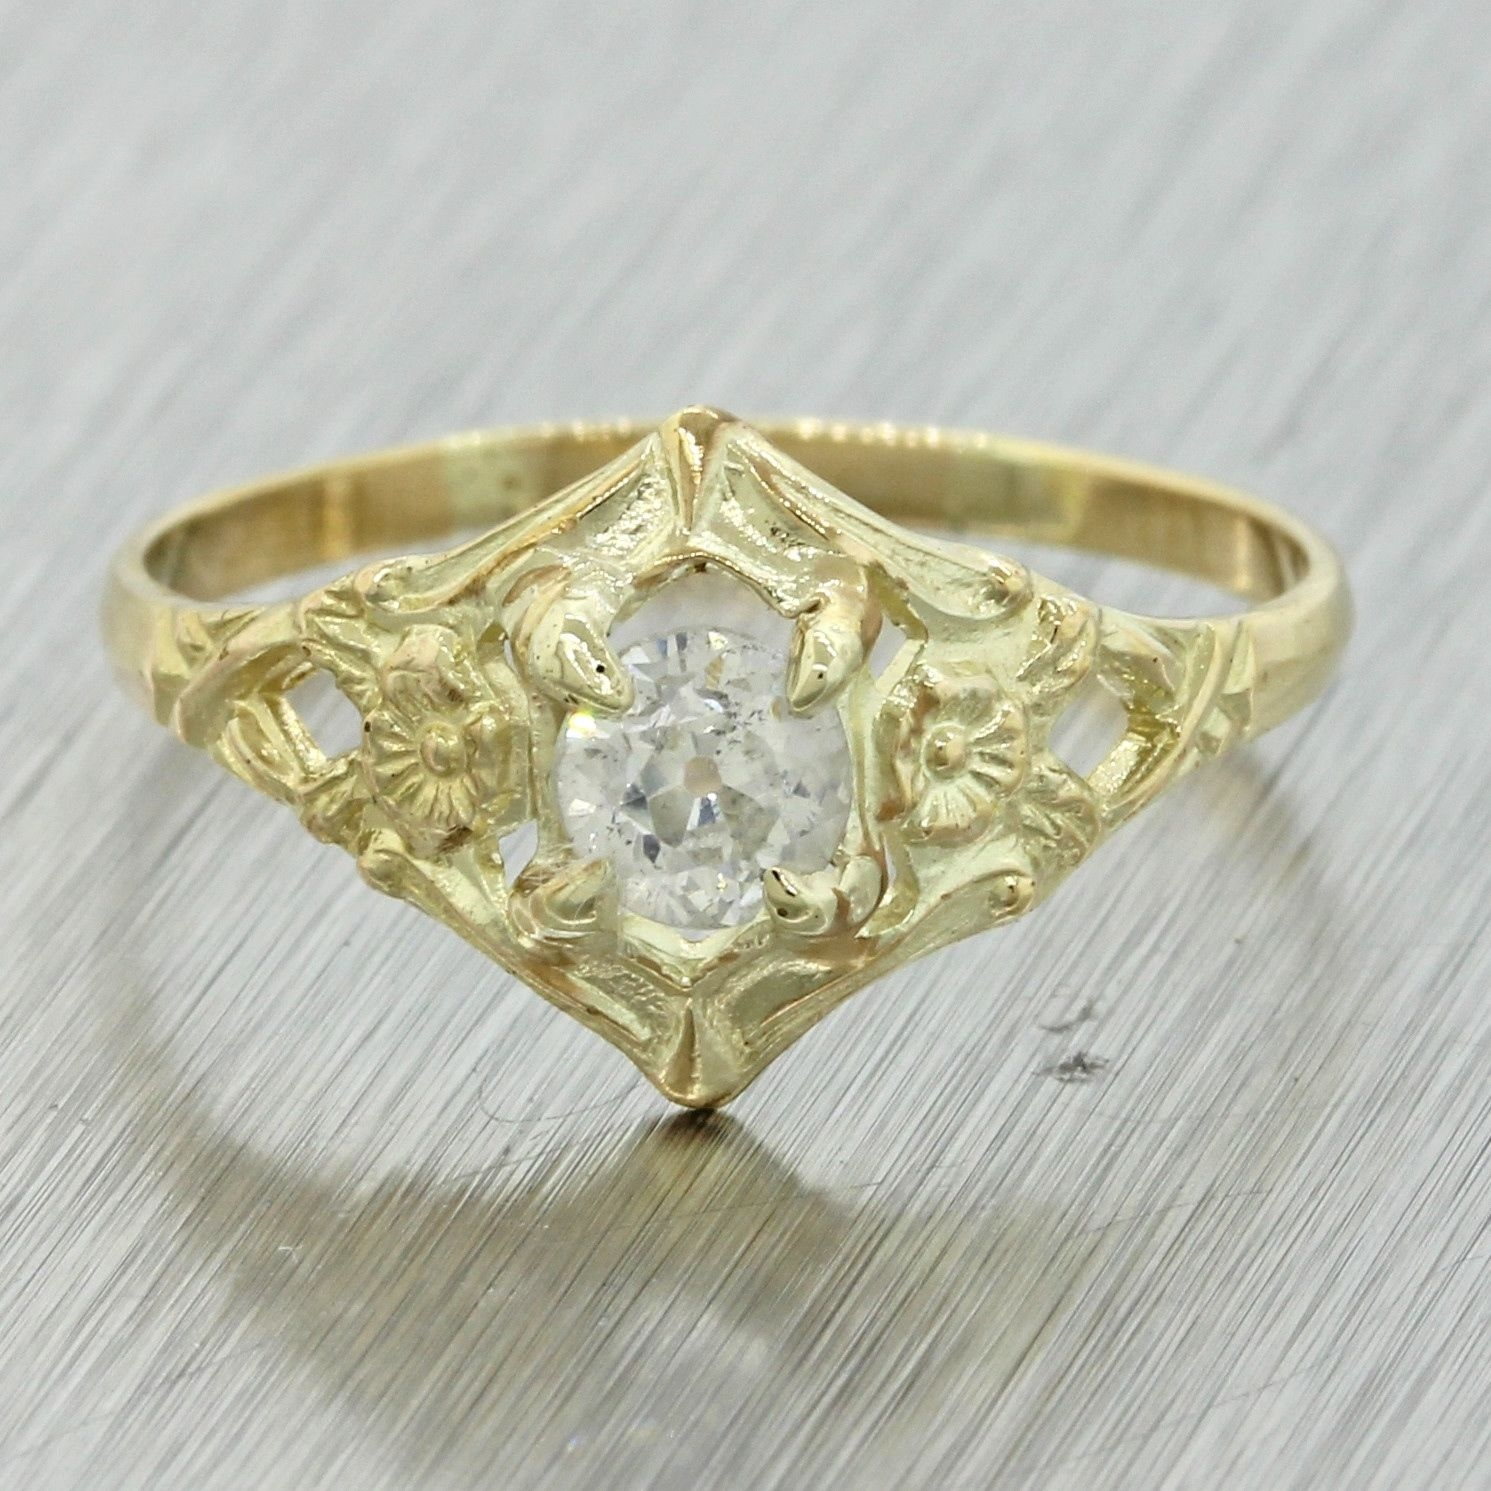 1880s Antique Victorian Estate Women's 14k Yellow Gold. Wedding Band Wedding Rings. Carrot Rings. Fitted Engagement Rings. Chunky Finger Engagement Rings. Life Goal Wedding Rings. Man 2013 Engagement Rings. Gold Malaysia Wedding Rings. Small Square Engagement Rings